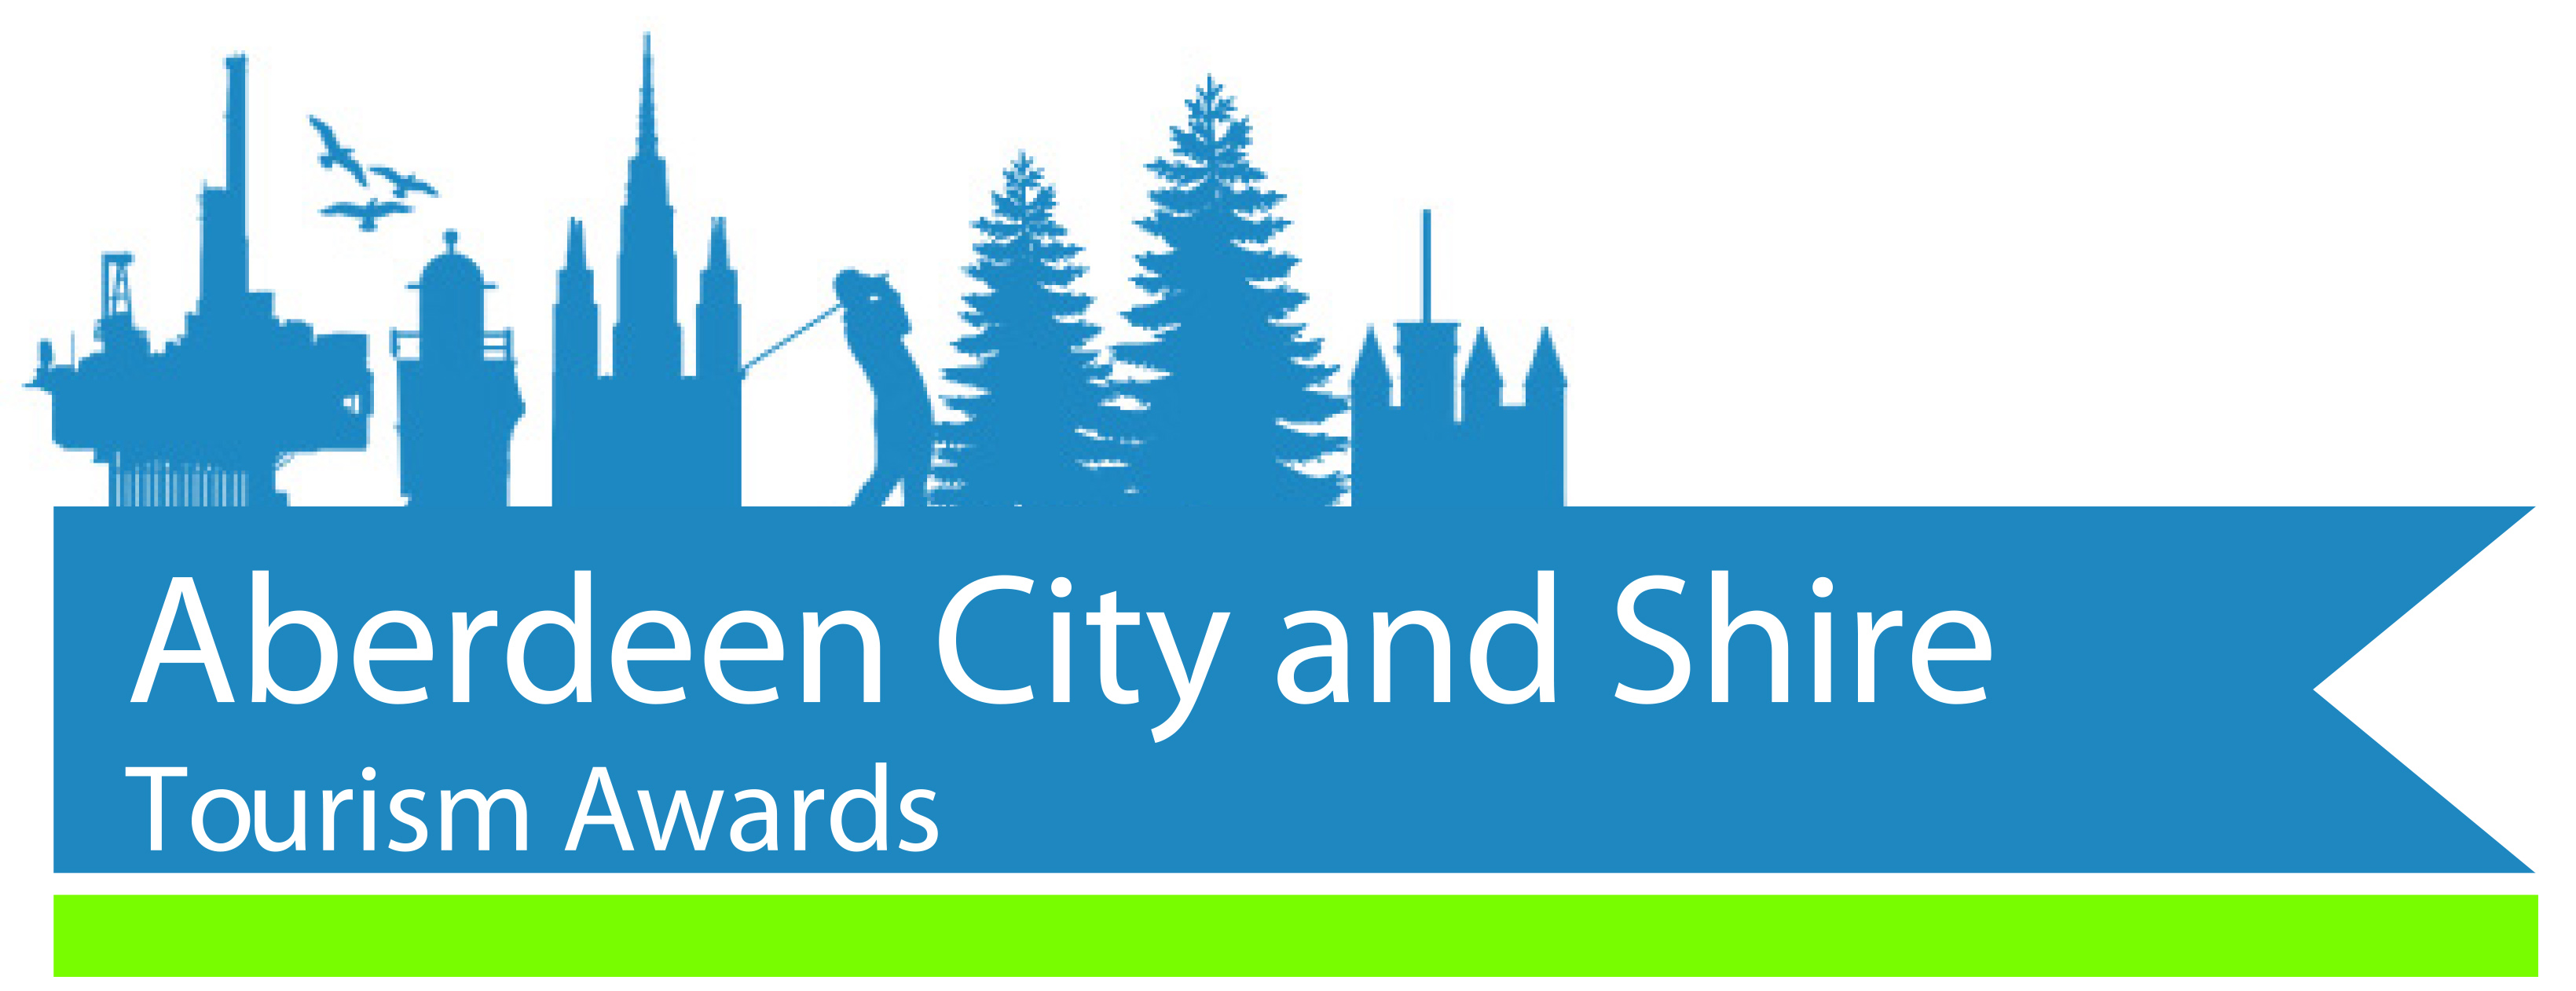 Aberdeen City & Shire Tourism Awards